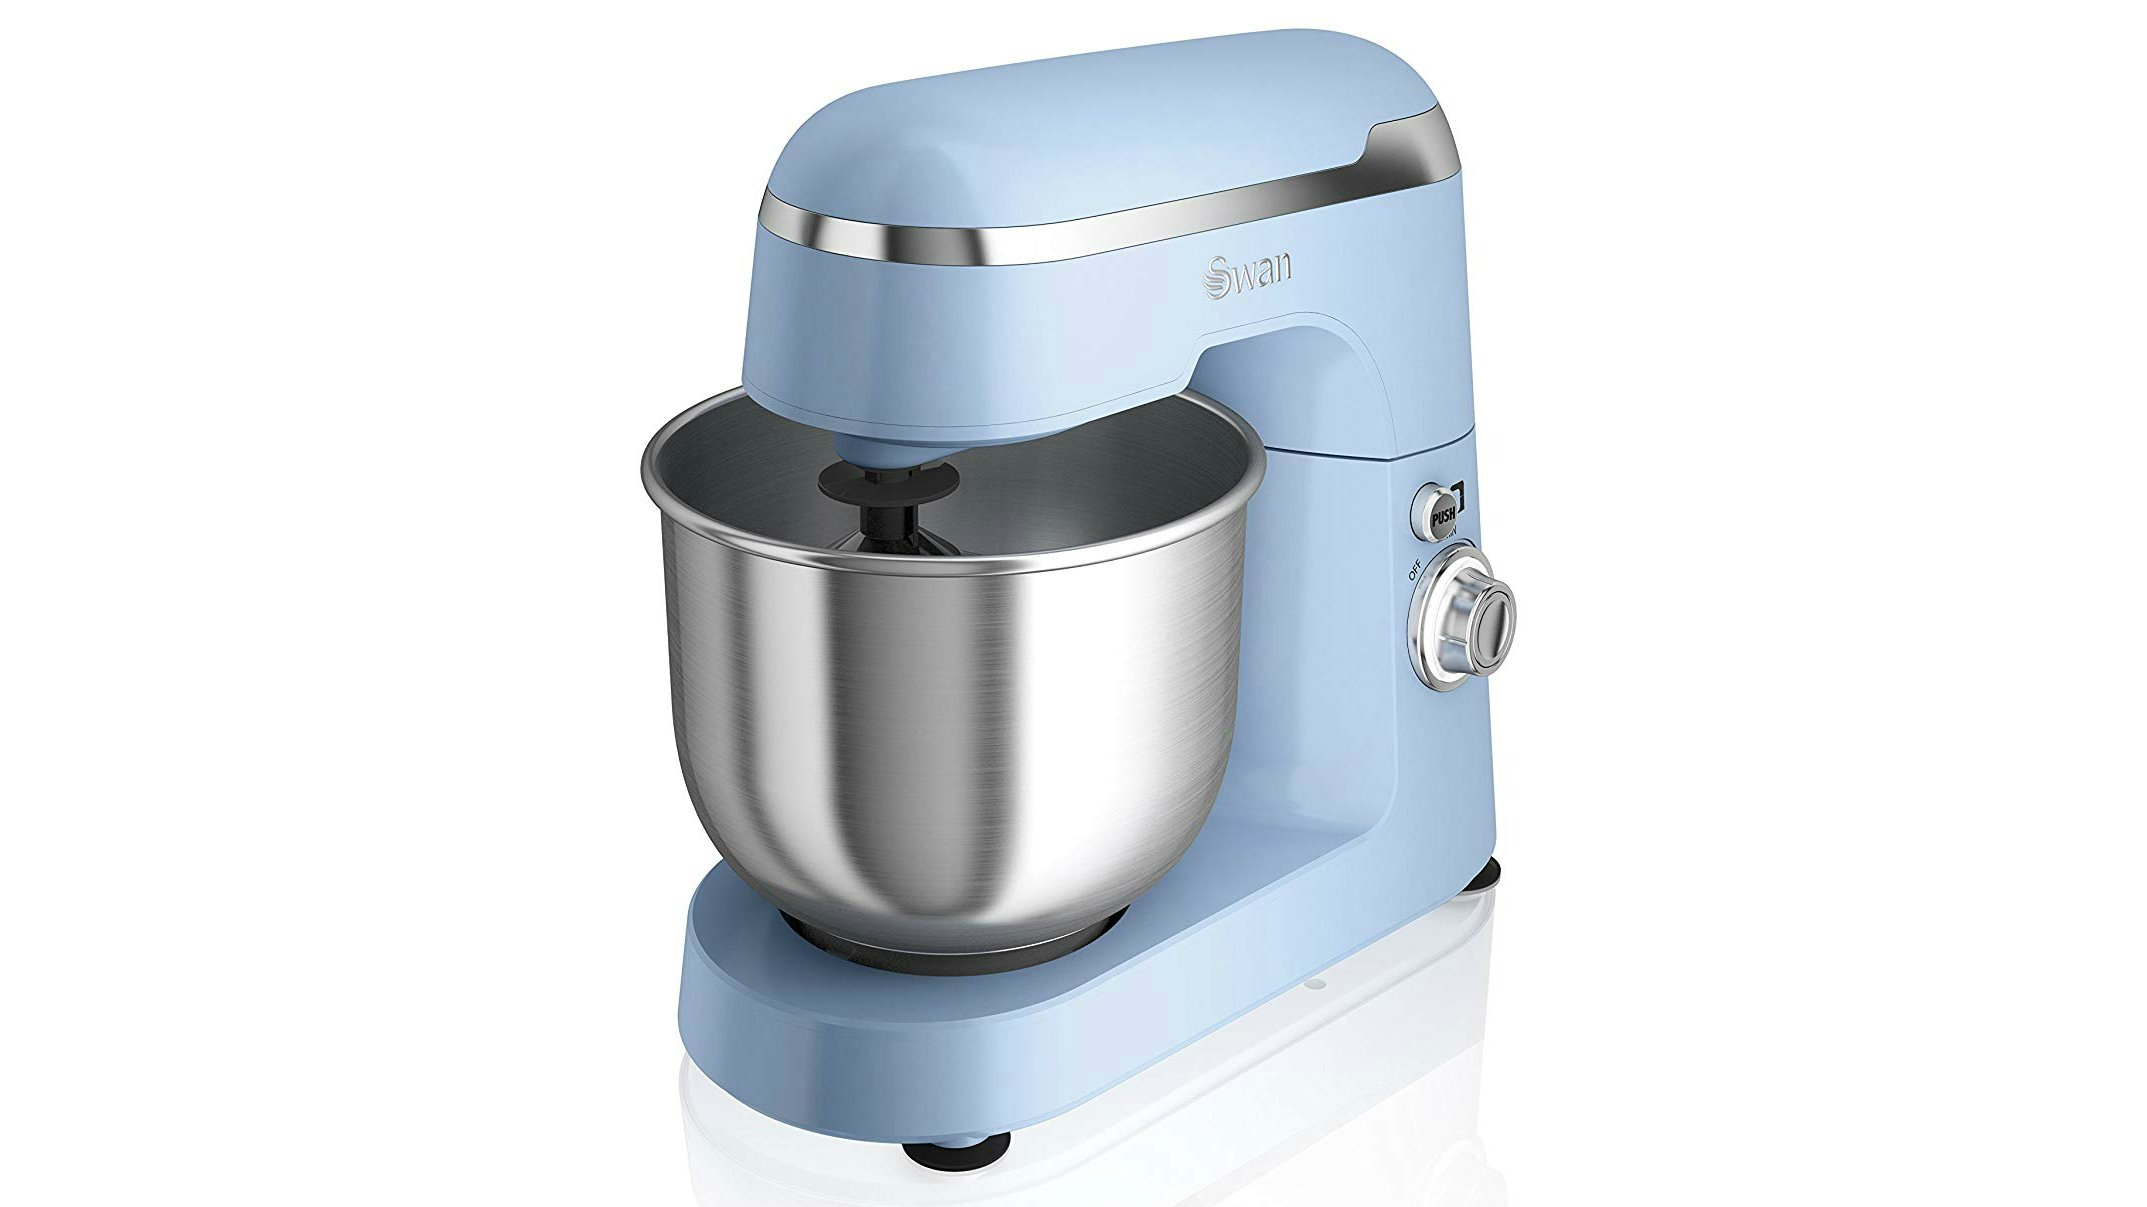 Best stand mixers: Superb mixers from KitchenAid, Sage, Swan ...